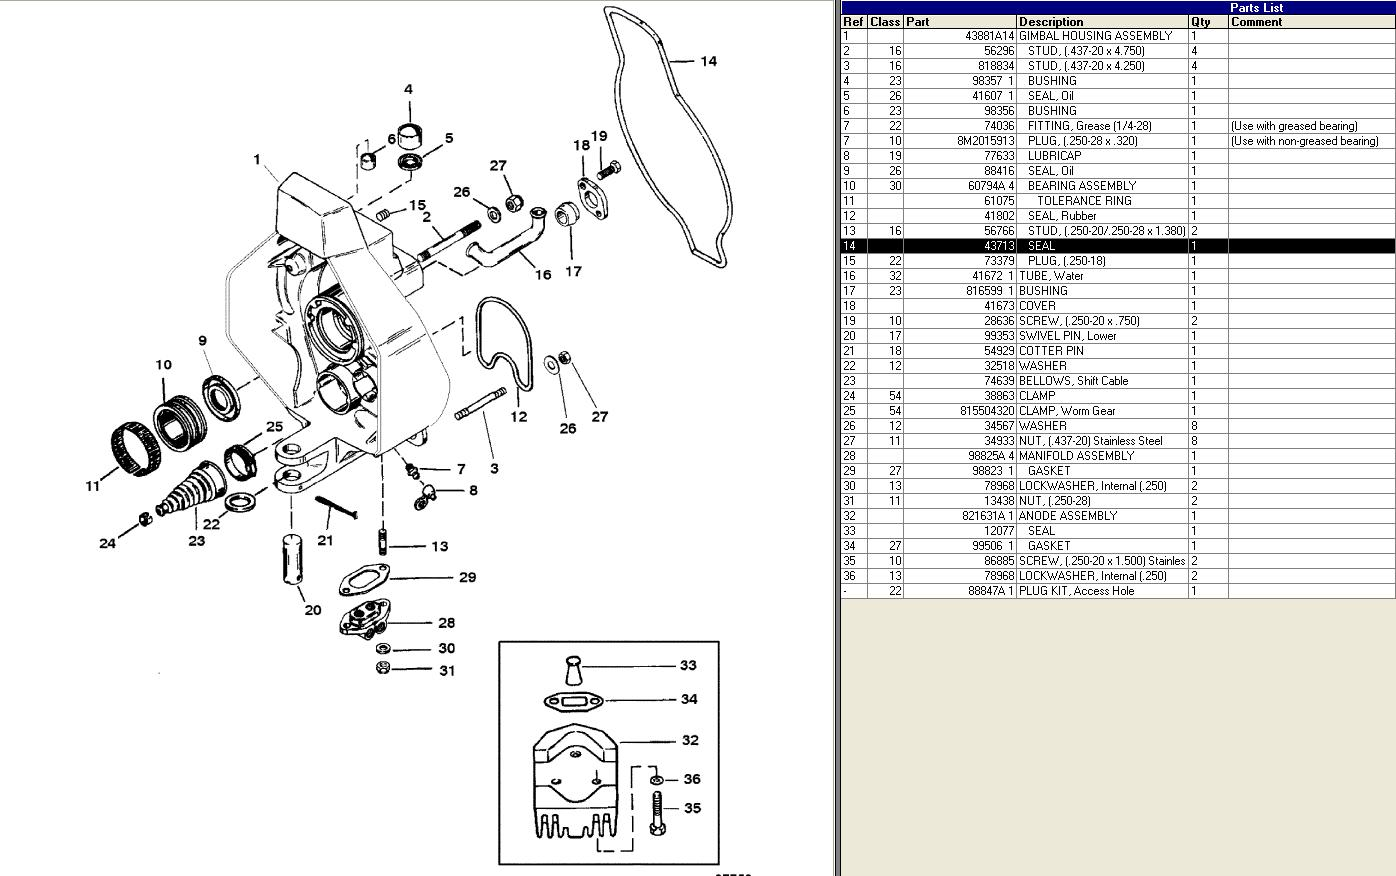 Mercruiser Engine Wiring Volvo Accessories Hard To Start Diagram Auto 4 3 1999 Lincoln Ac 225 Welder